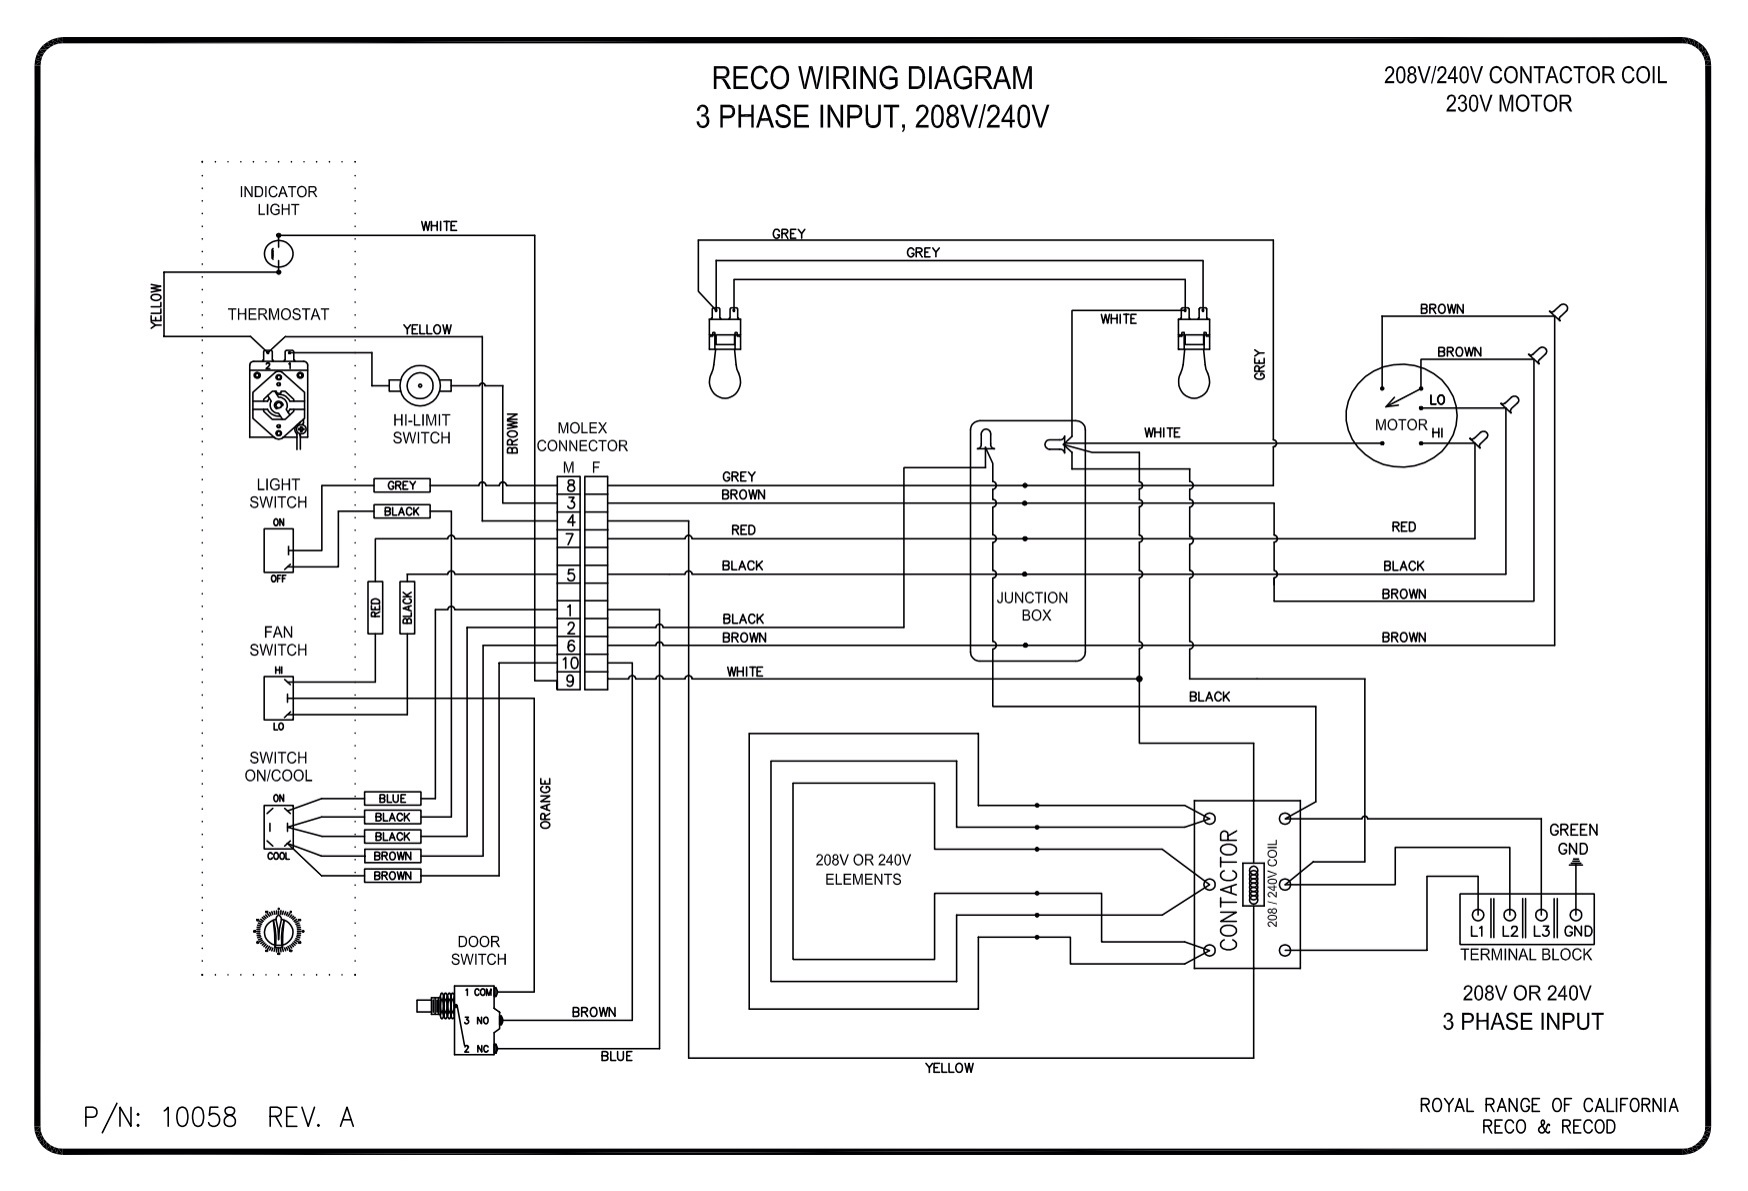 3 Phase 240V Wiring Diagram from royalranges.com